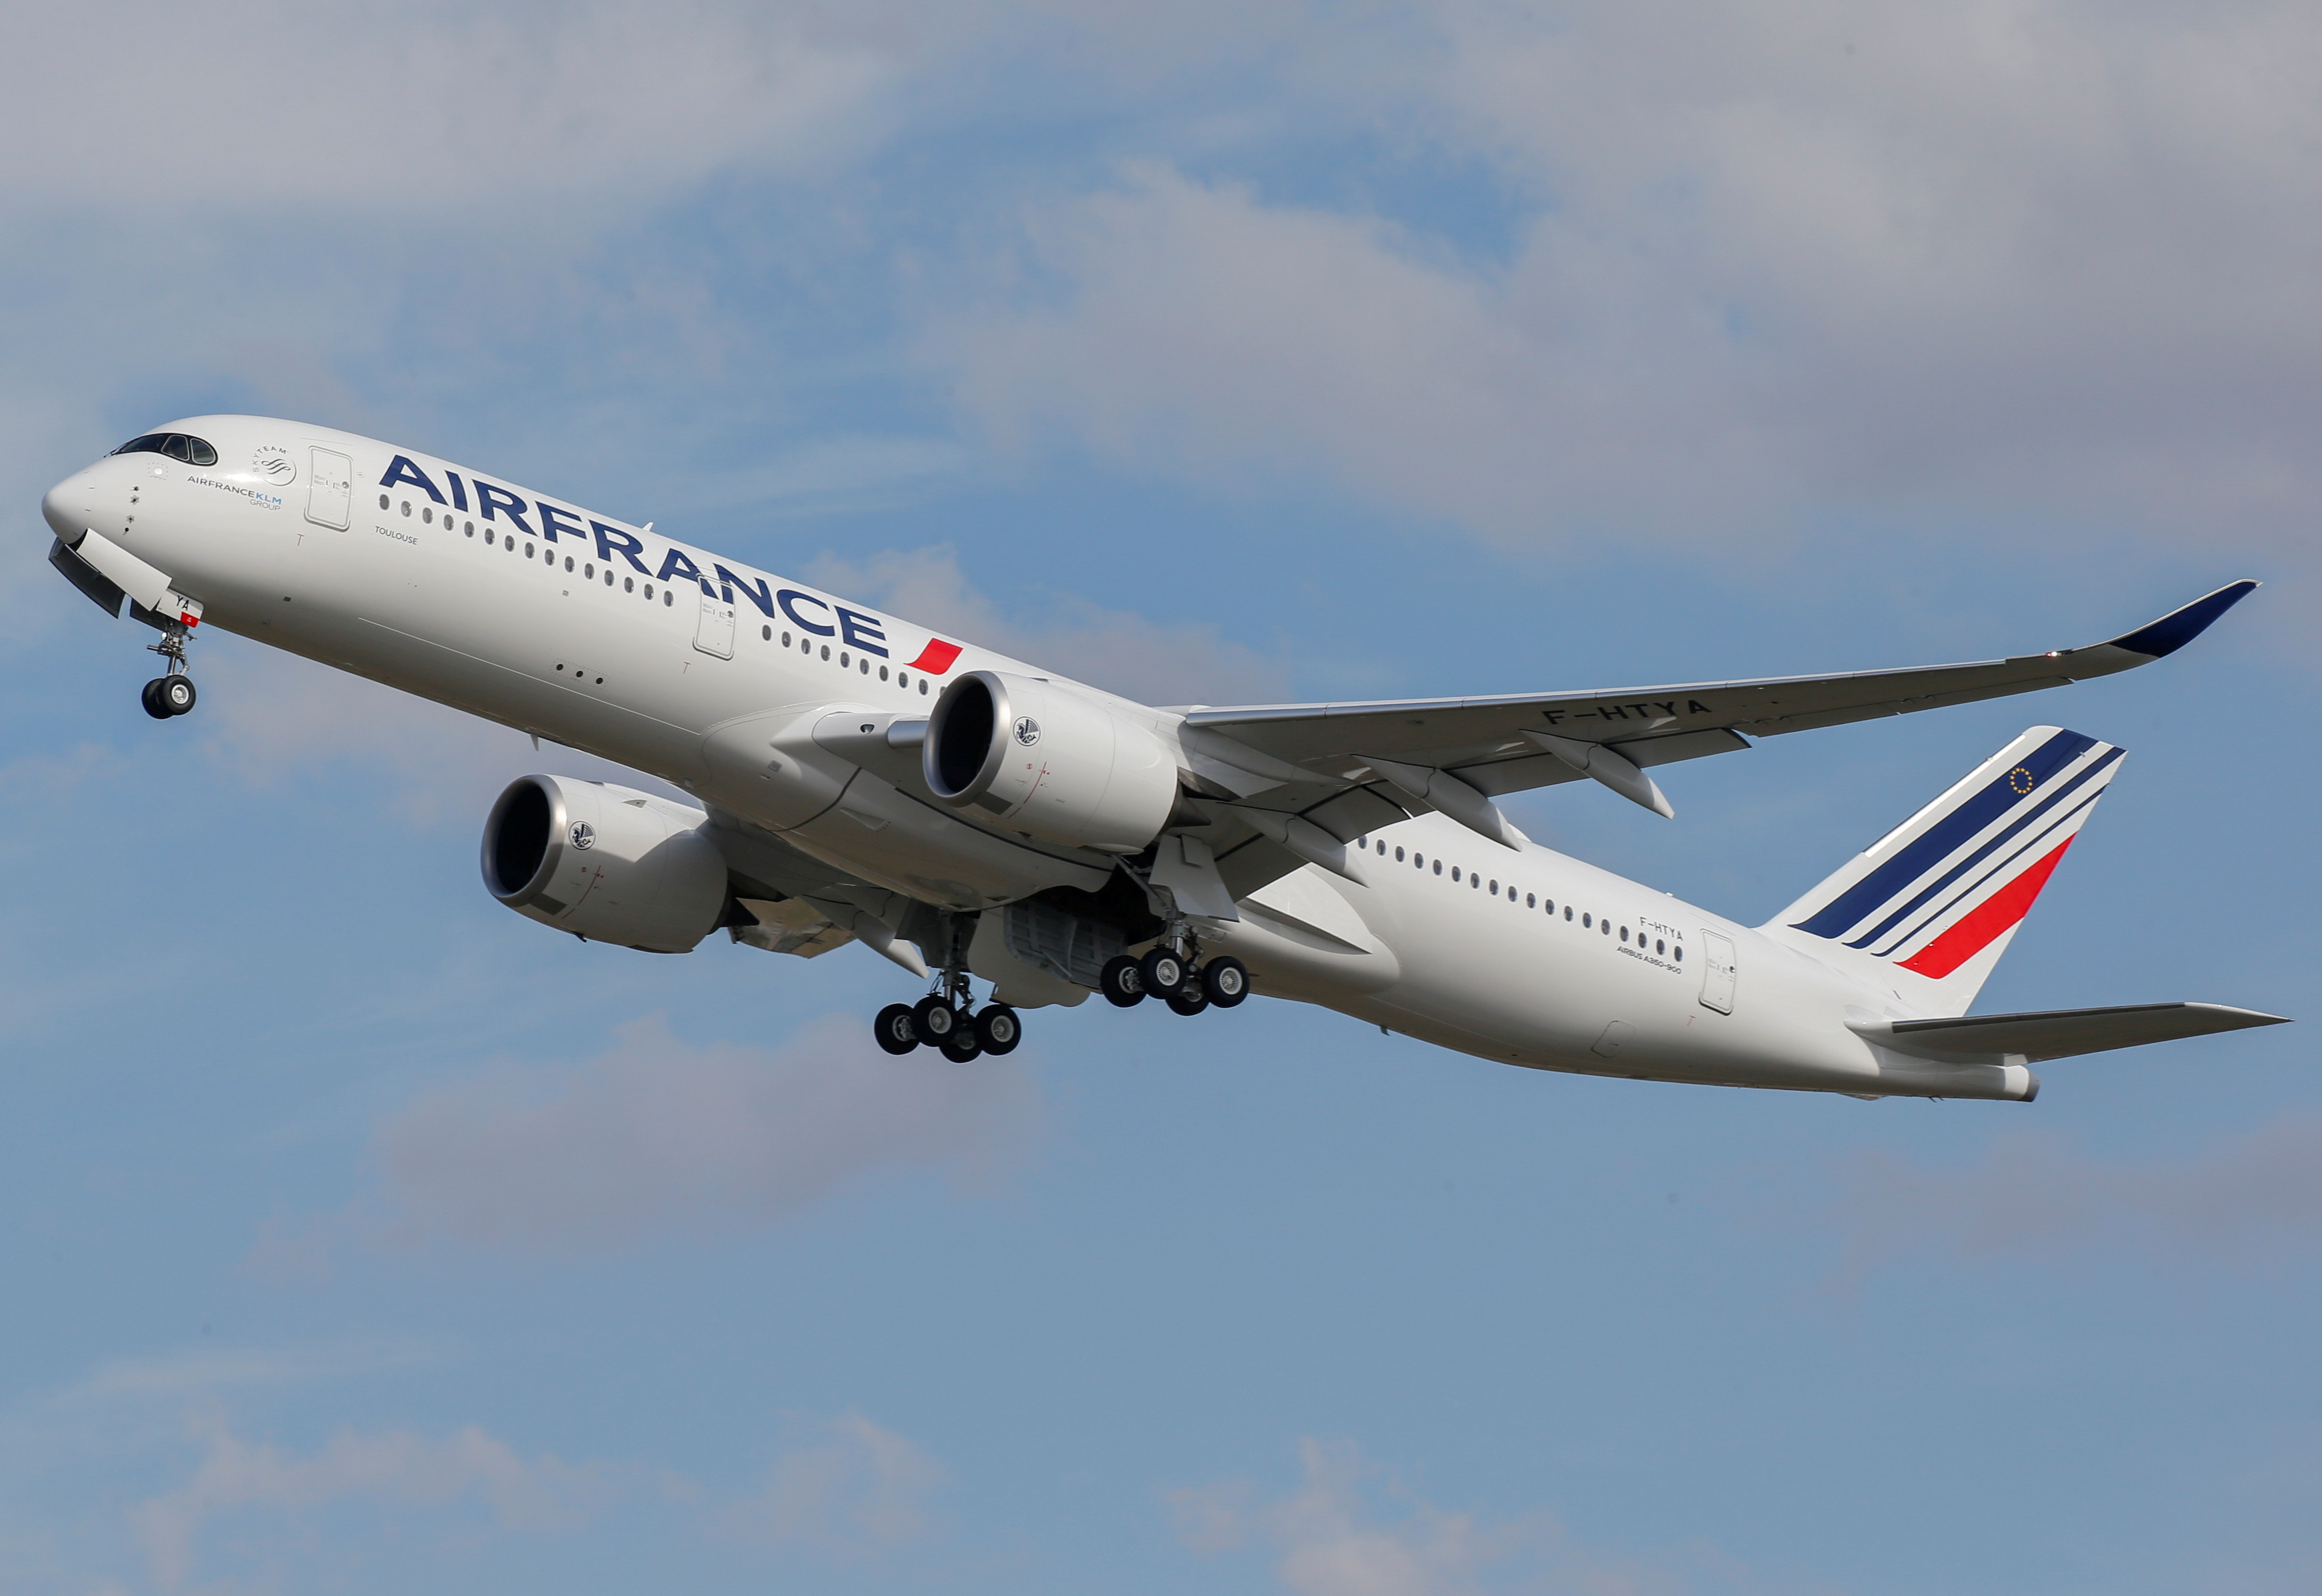 The first Air France airliner's Airbus A350 takes off after a ceremony at the aircraft builder's headquarters in Colomiers near Toulouse, France, September 27, 2019. REUTERS/Regis Duvignau/File Photo